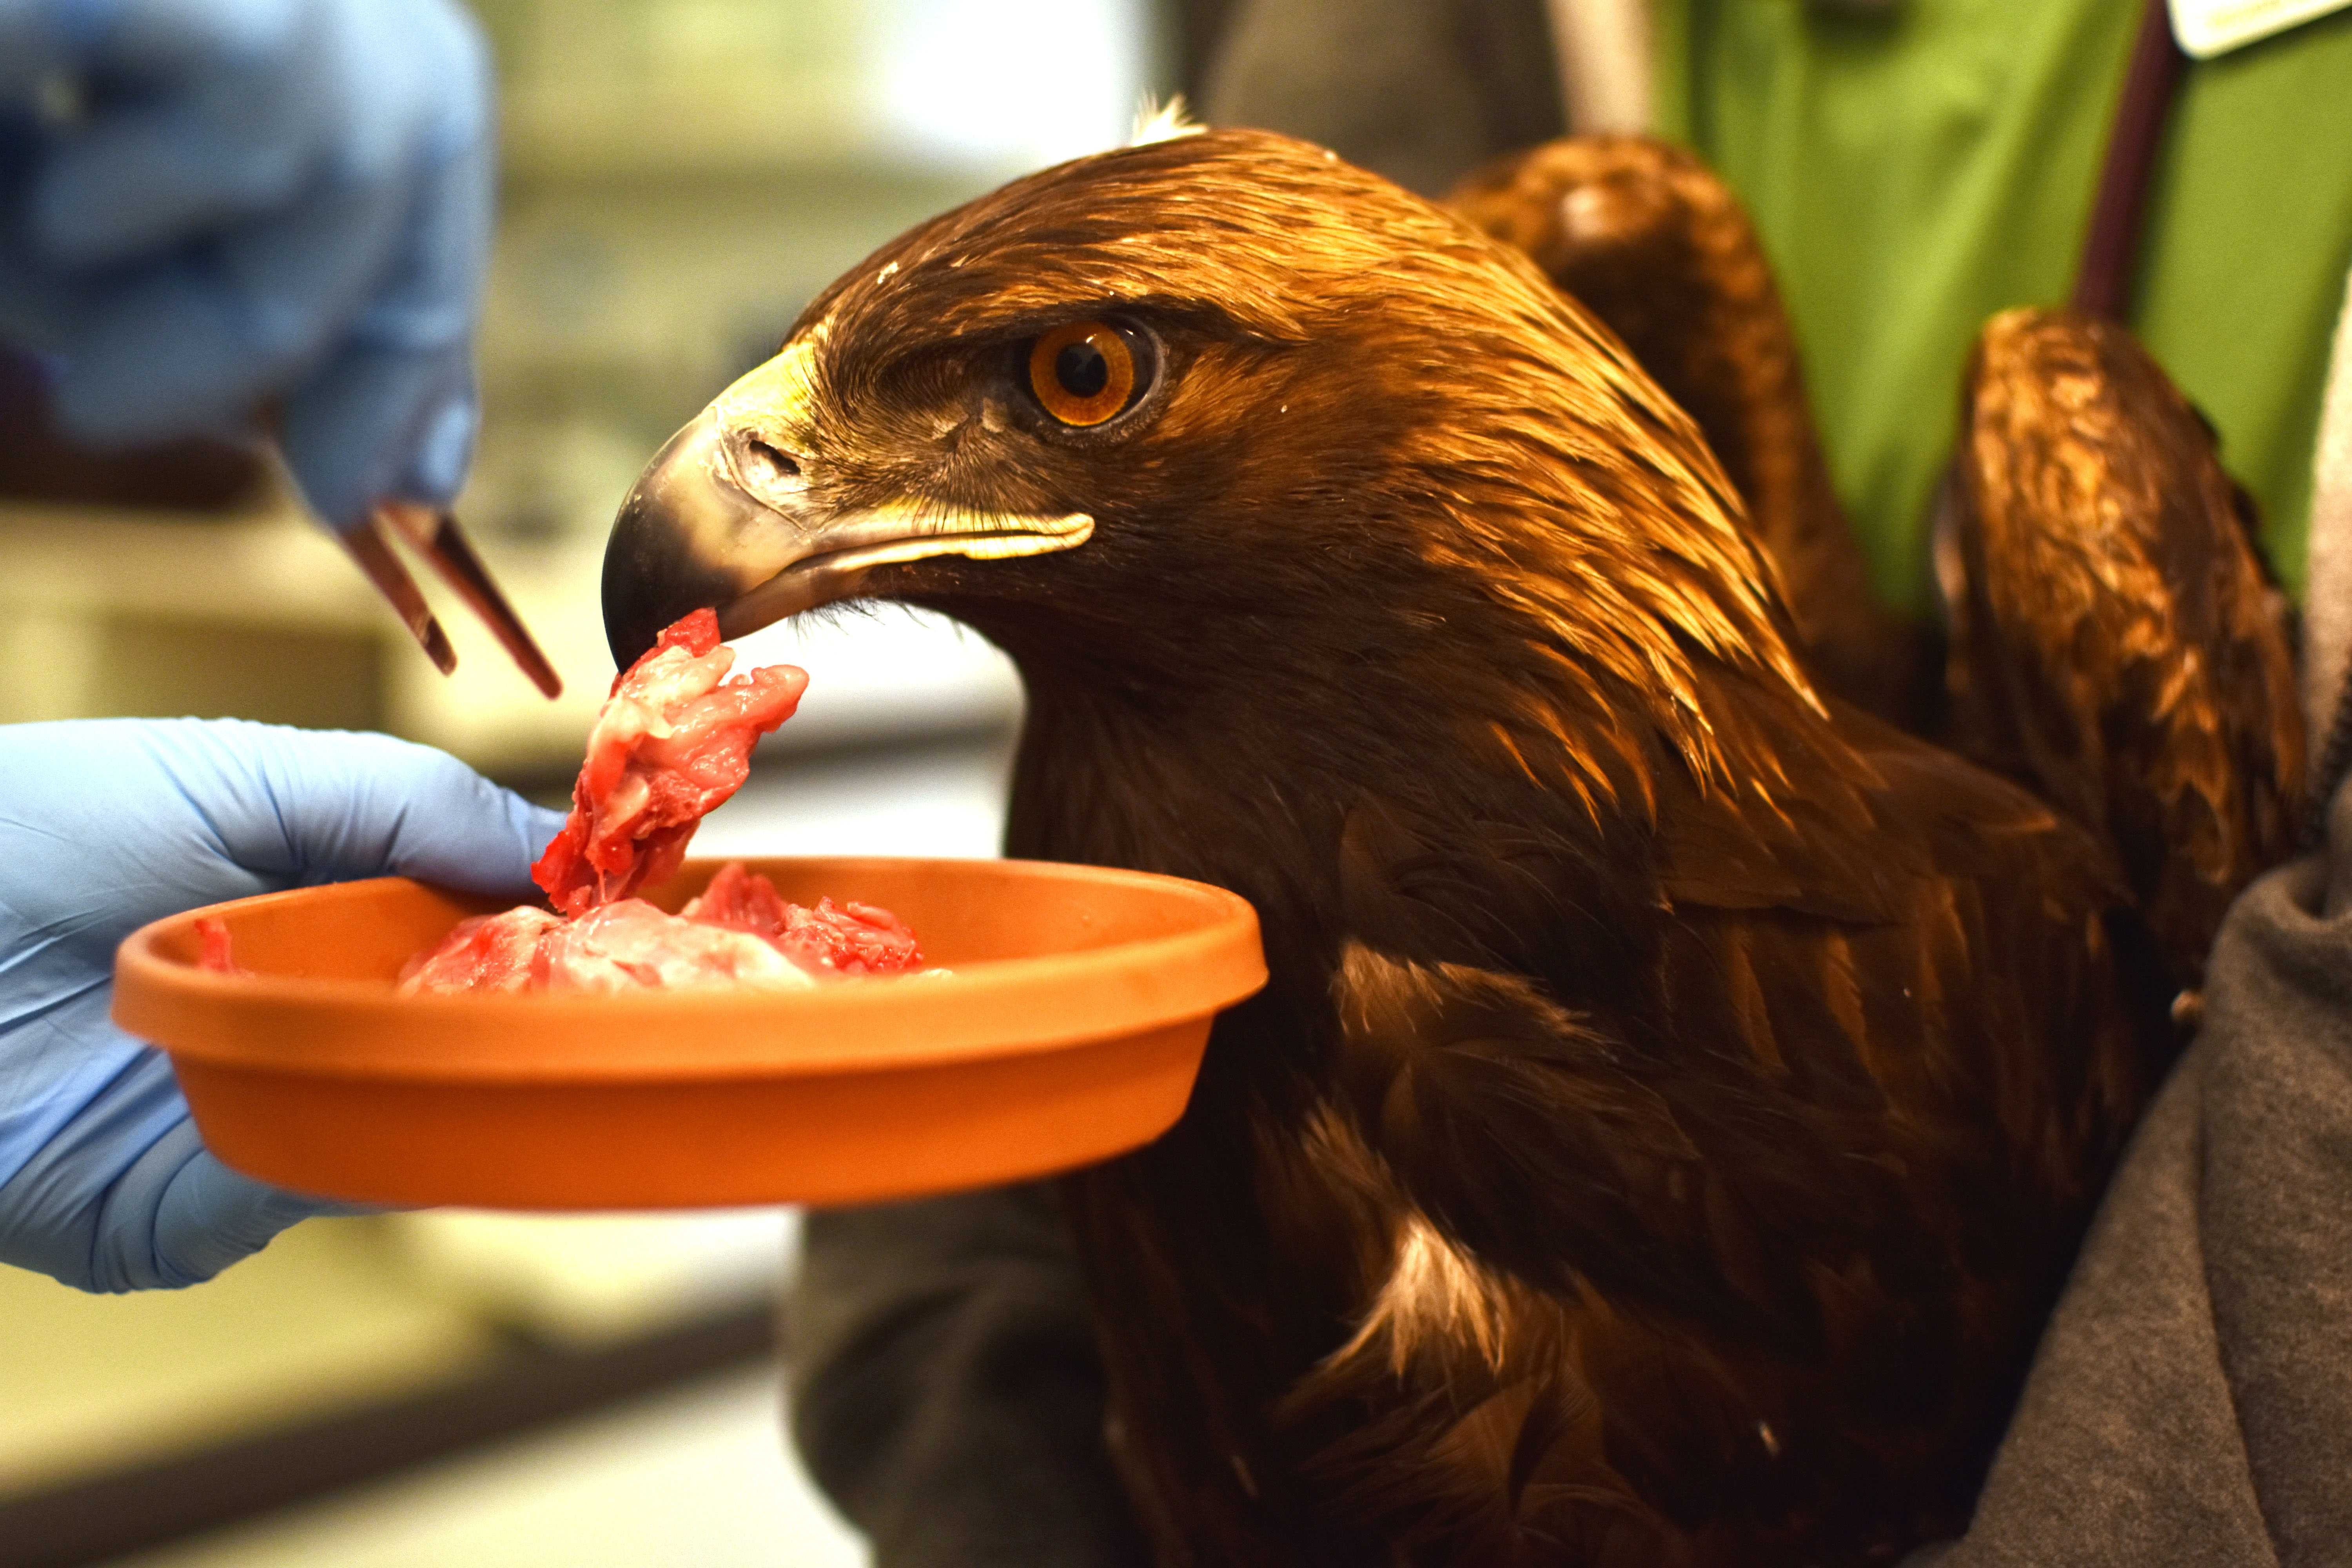 Taylor Bloch feeds meat to a golden eagle while Shannon McClain holds it still at Lindsay Wildlife Rehabilitation Hospital in Walnut Creek on Sunday, Jan. 27.